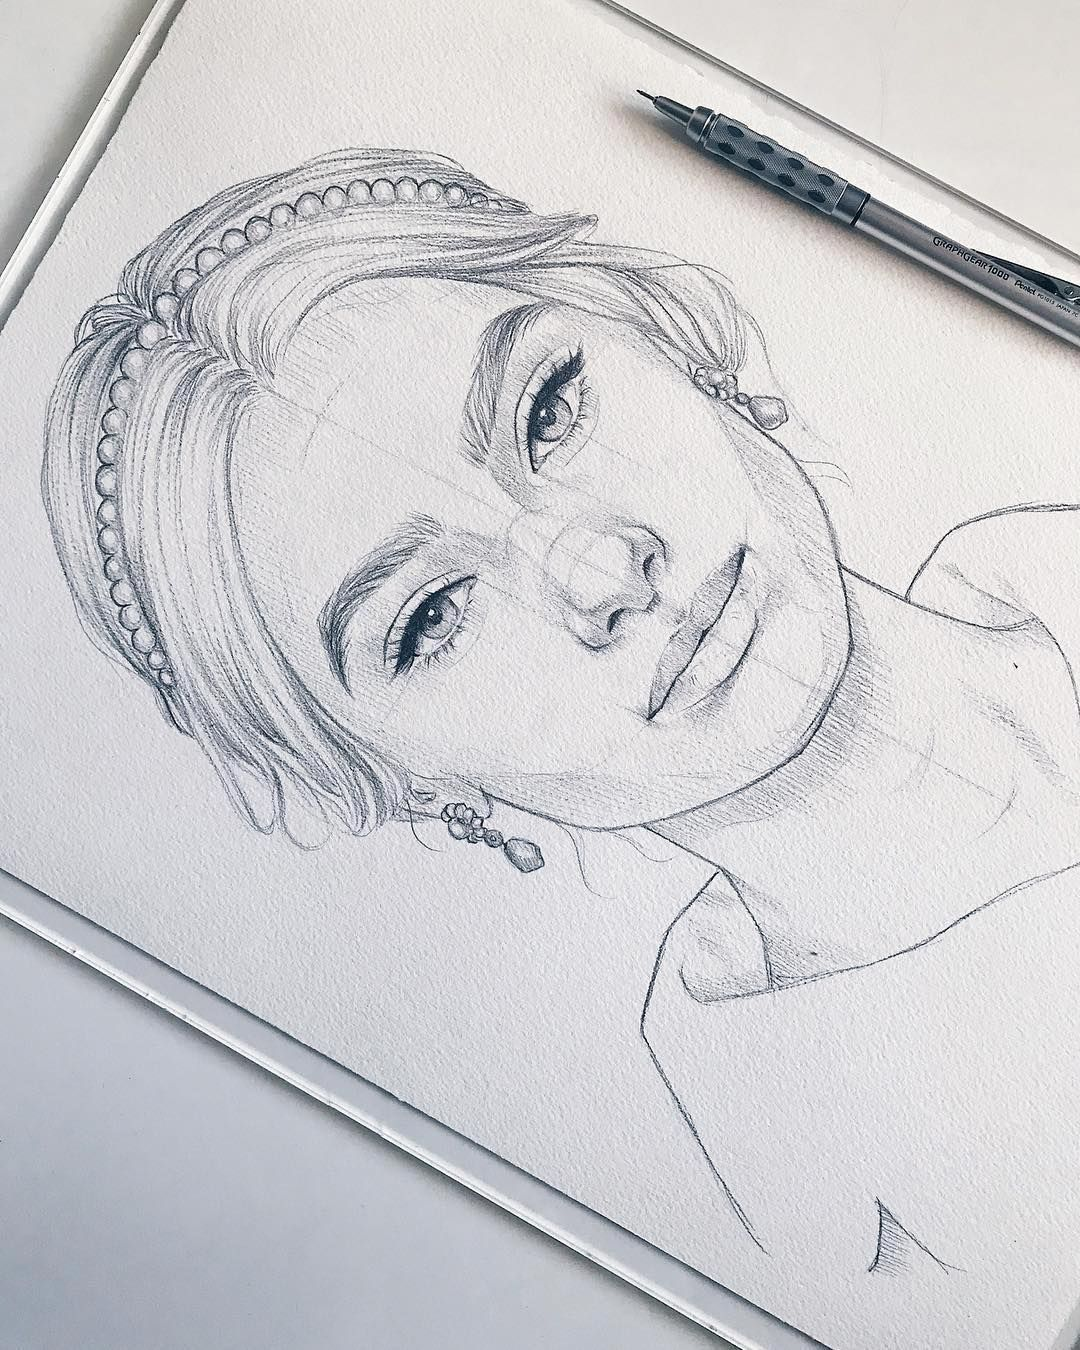 great art by @amykour . Wonderful portrait drawing of a ...